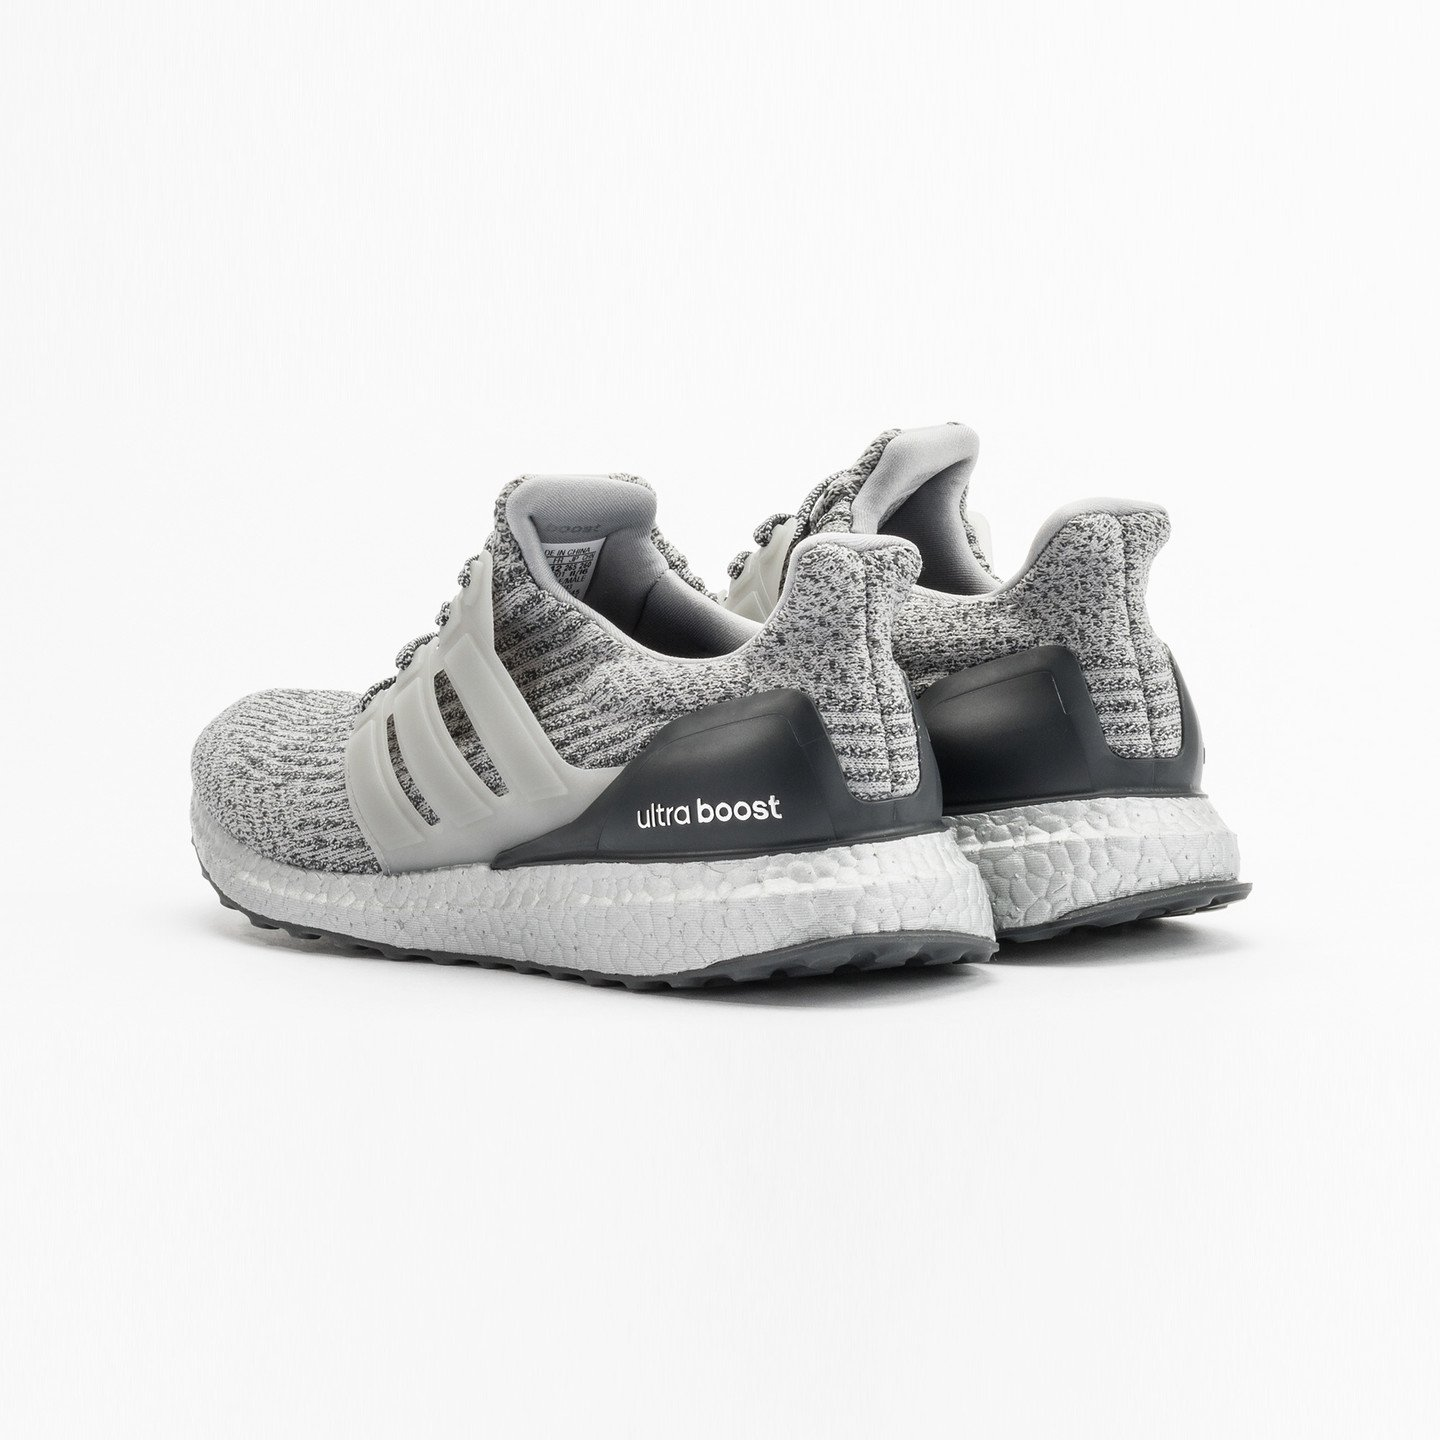 Adidas Ultra Boost 3.0 'Super Bowl' Silver Grey BA8143-47.33